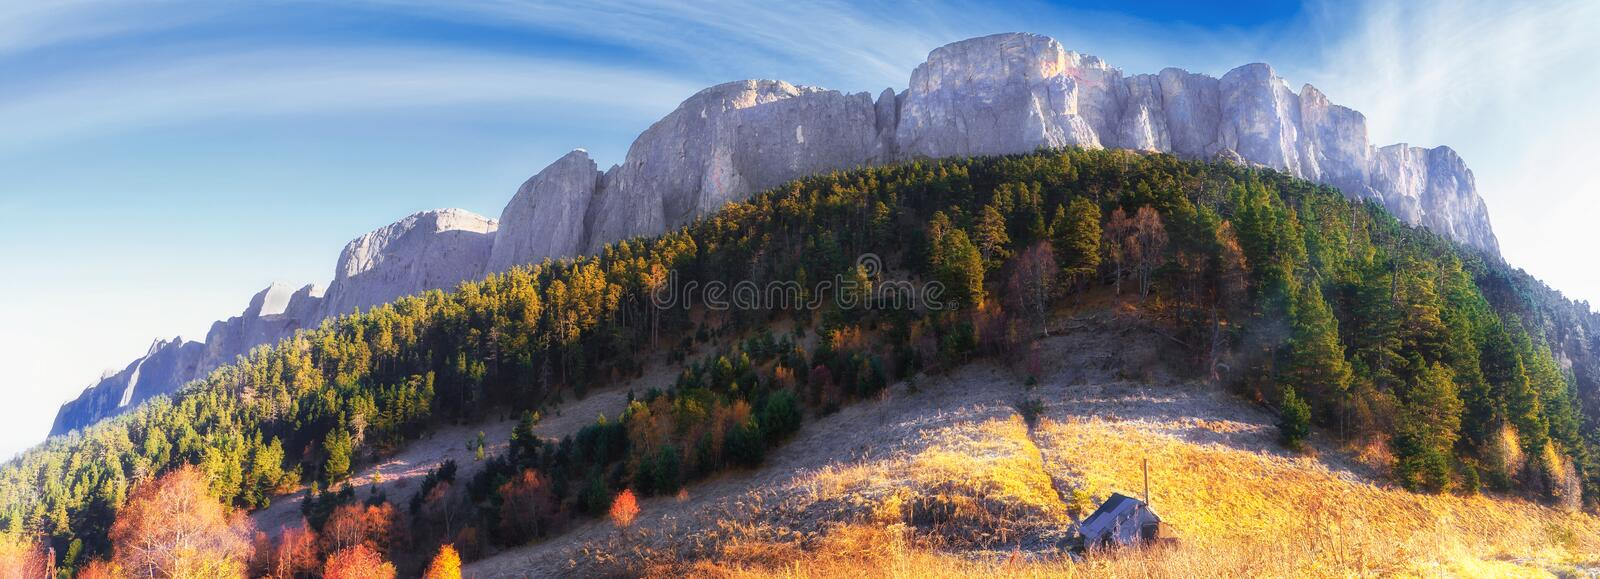 Beautiful scenic golden autumn landscape of majestic Bolshoy Tkhach rocky mountain peak under blue sky at sunrise with wooden tour royalty free stock photos